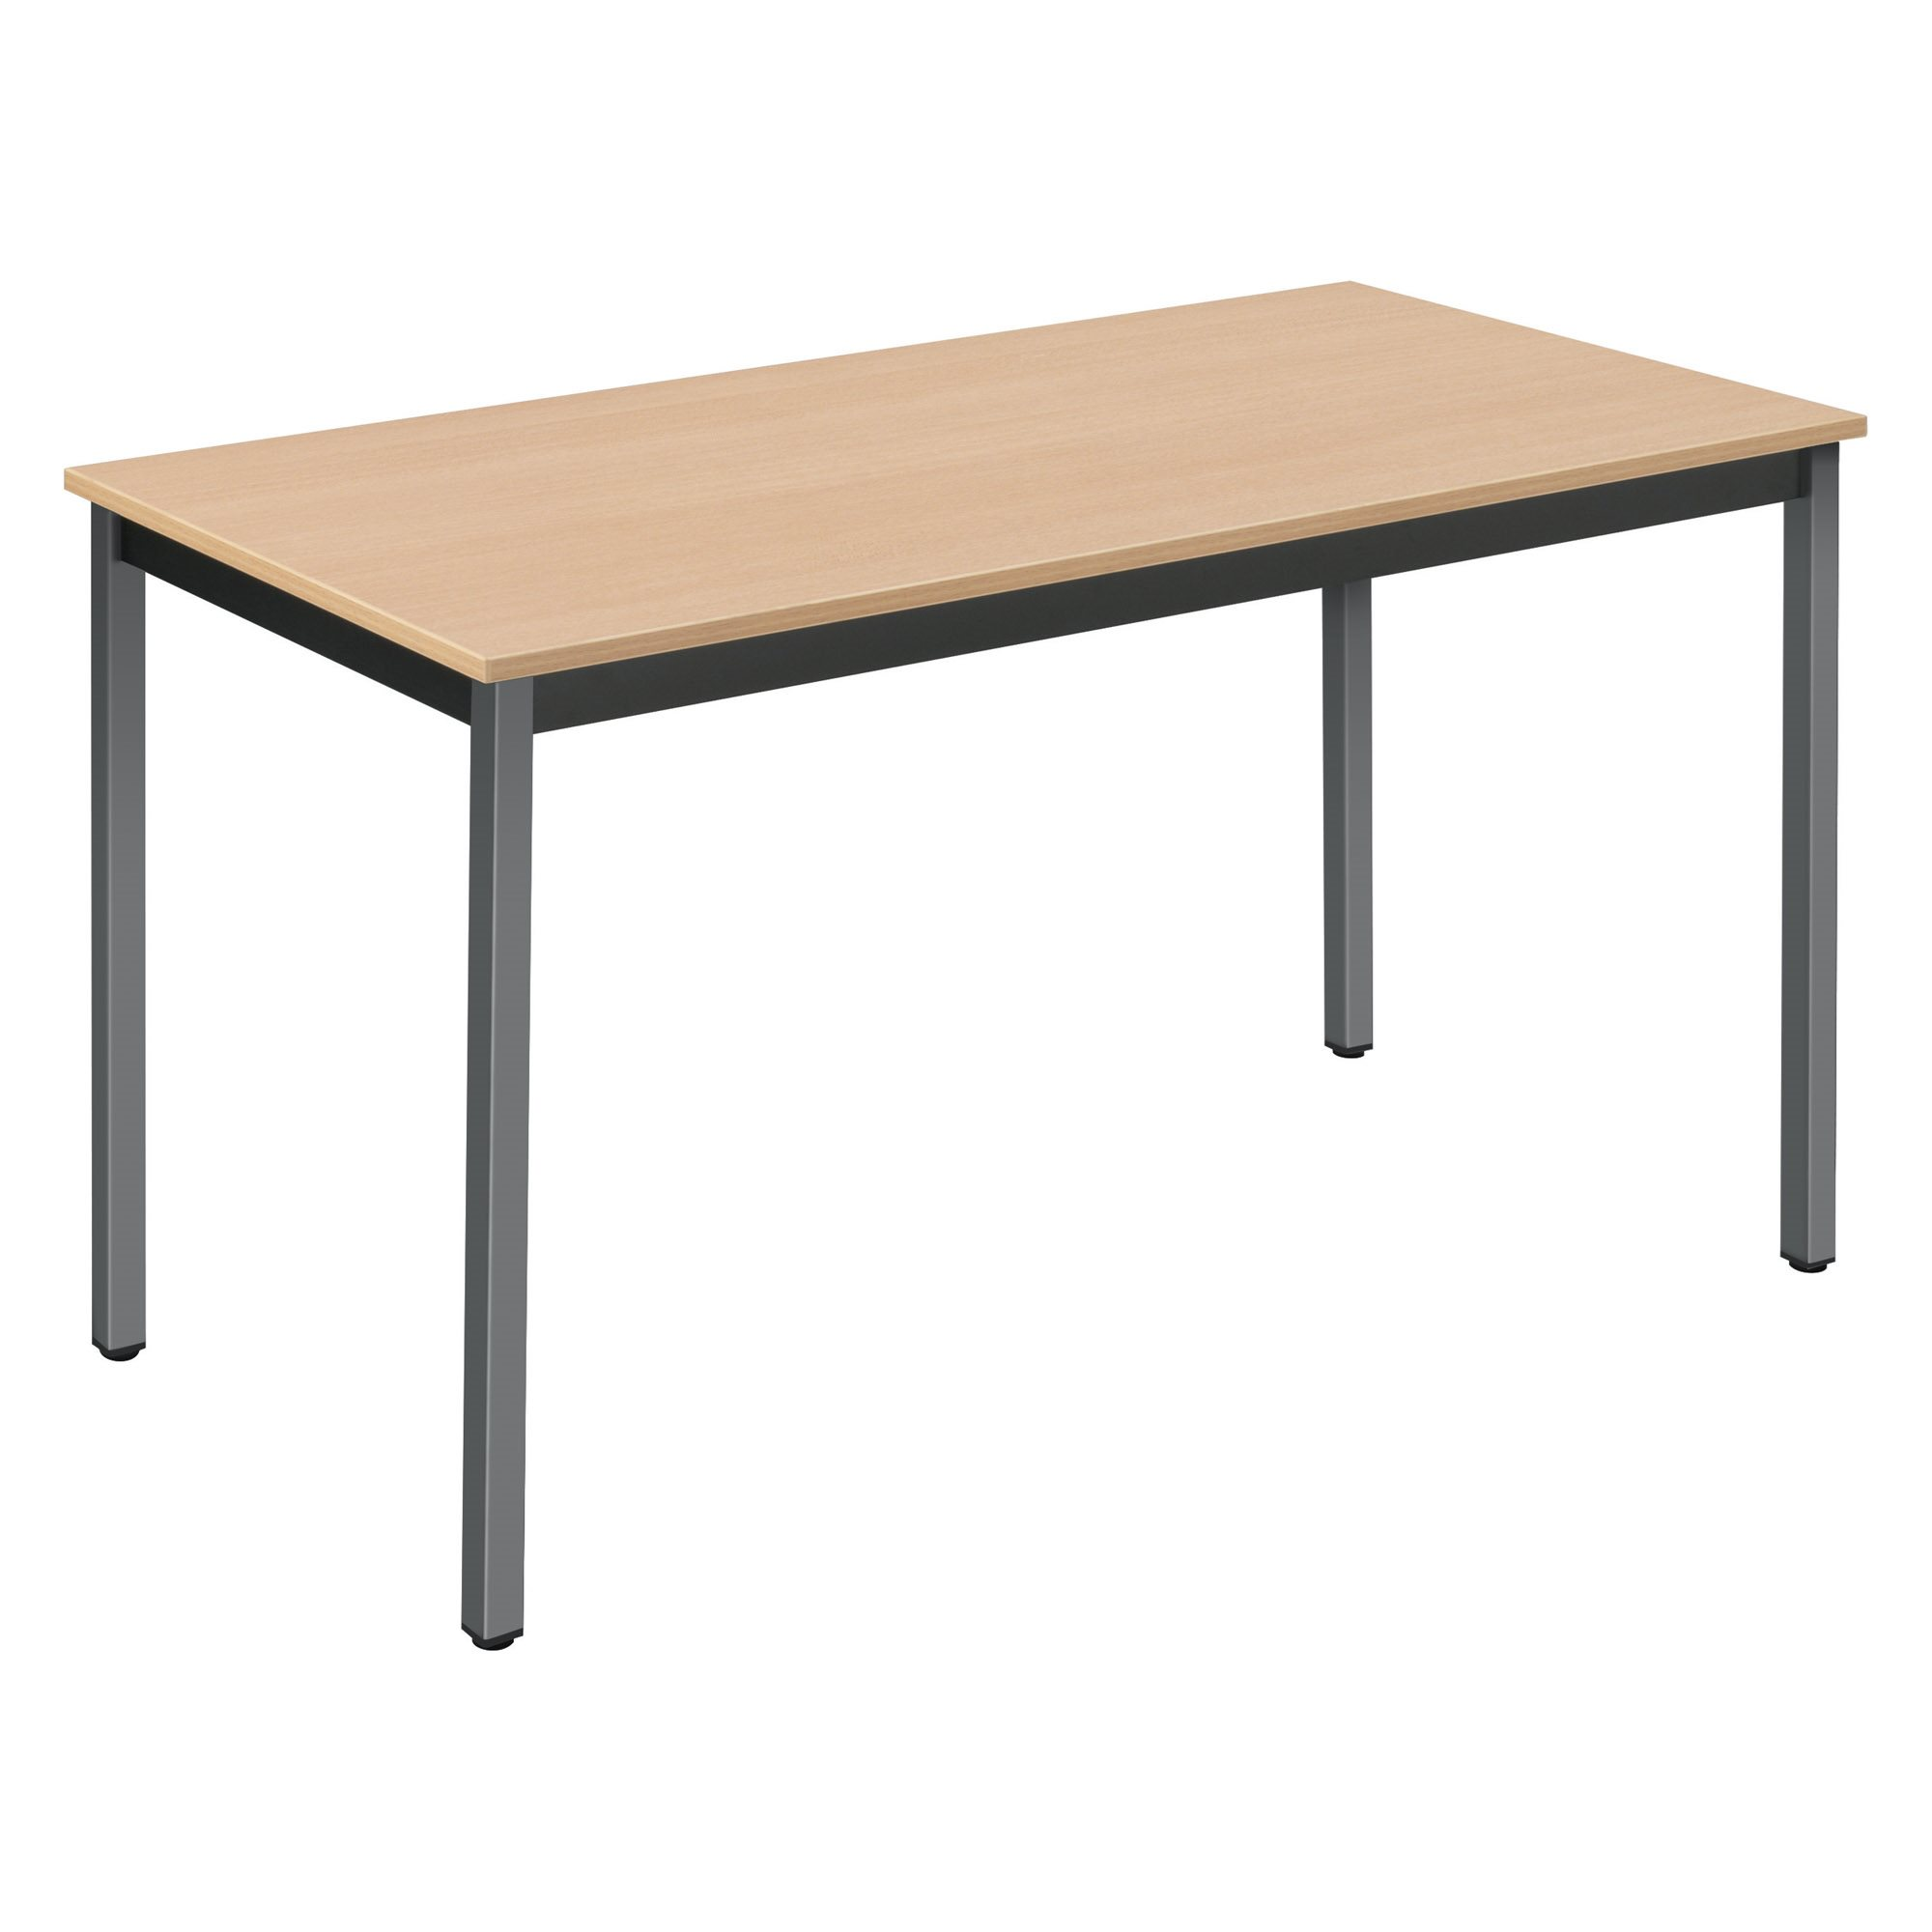 Pack 1 Multi-purpose table eco beech/anthracite W 120 x D 60 cm purchased = 1 table free